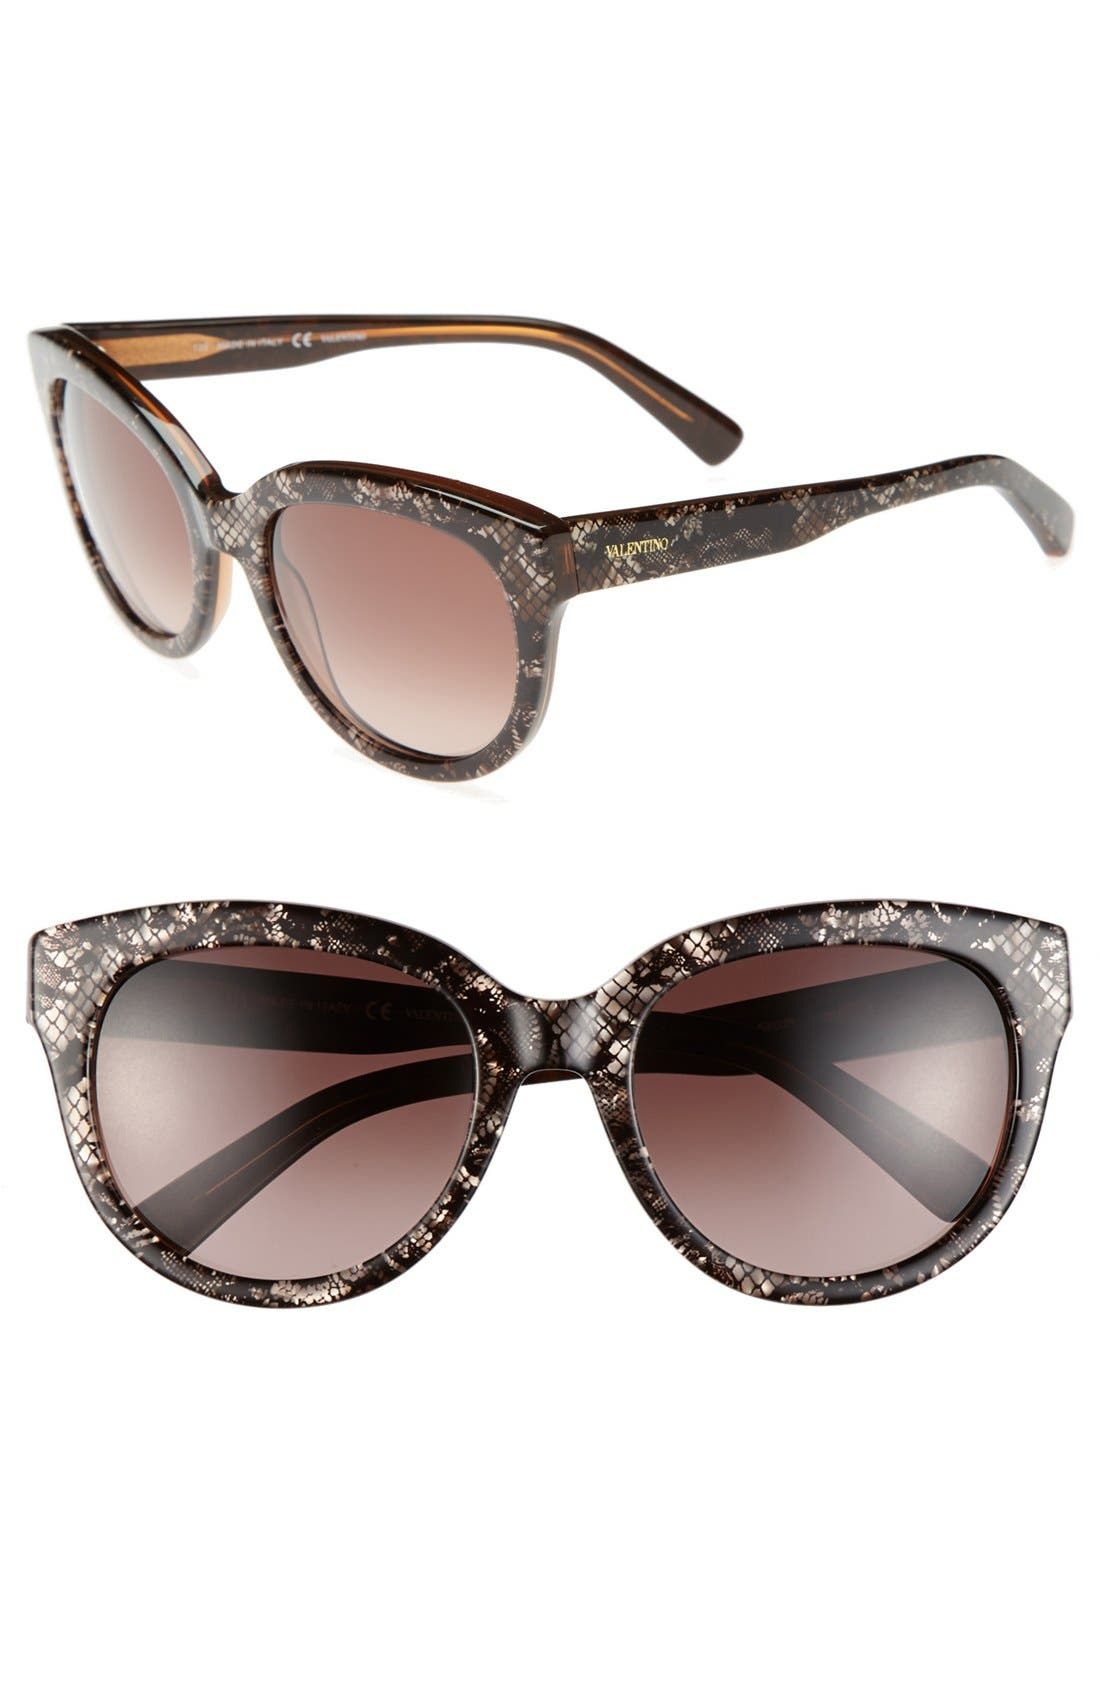 Main Image - Valentino 54mm Retro Sunglasses